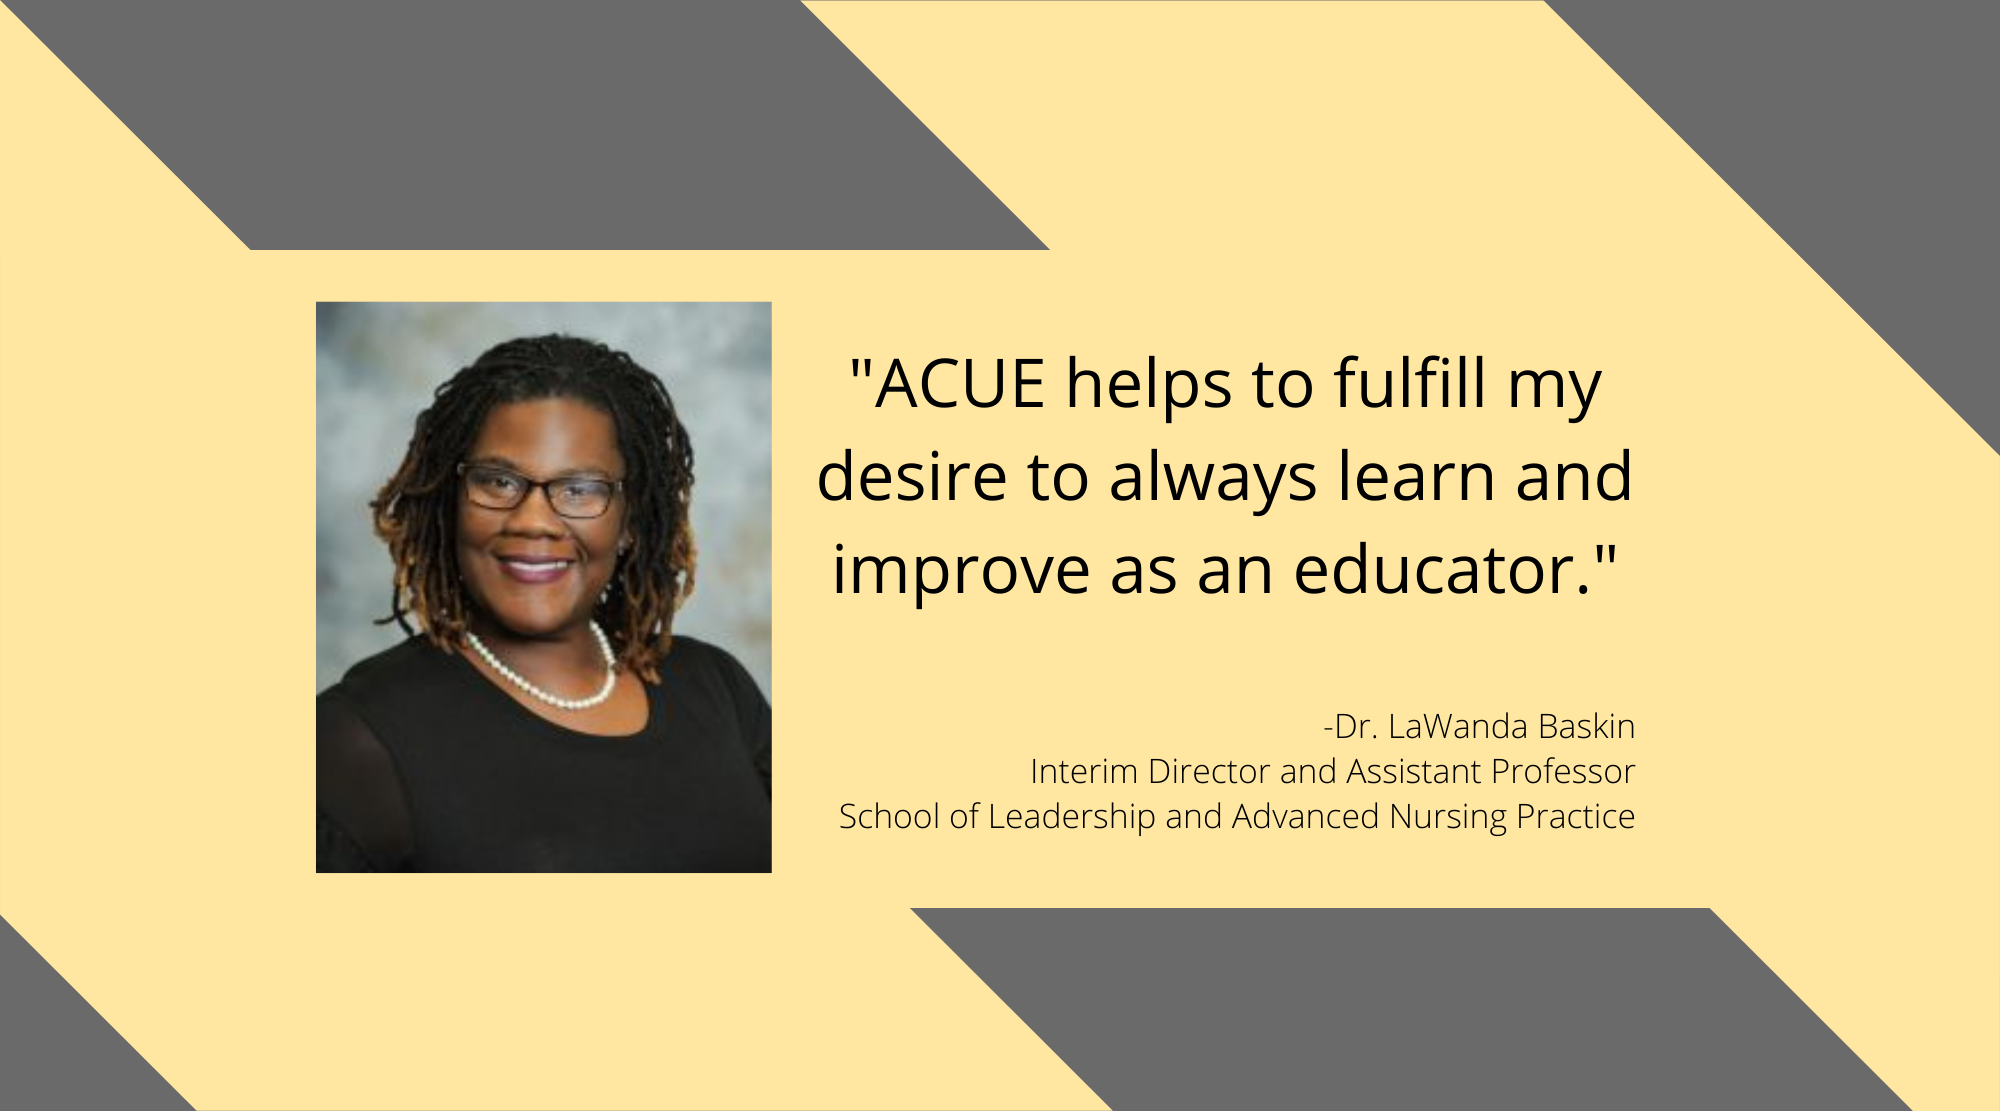 Quote from ACUE testimonial by Dr. LaWanda Baskin from the School of Leadership and Advanced Nursing Practice.